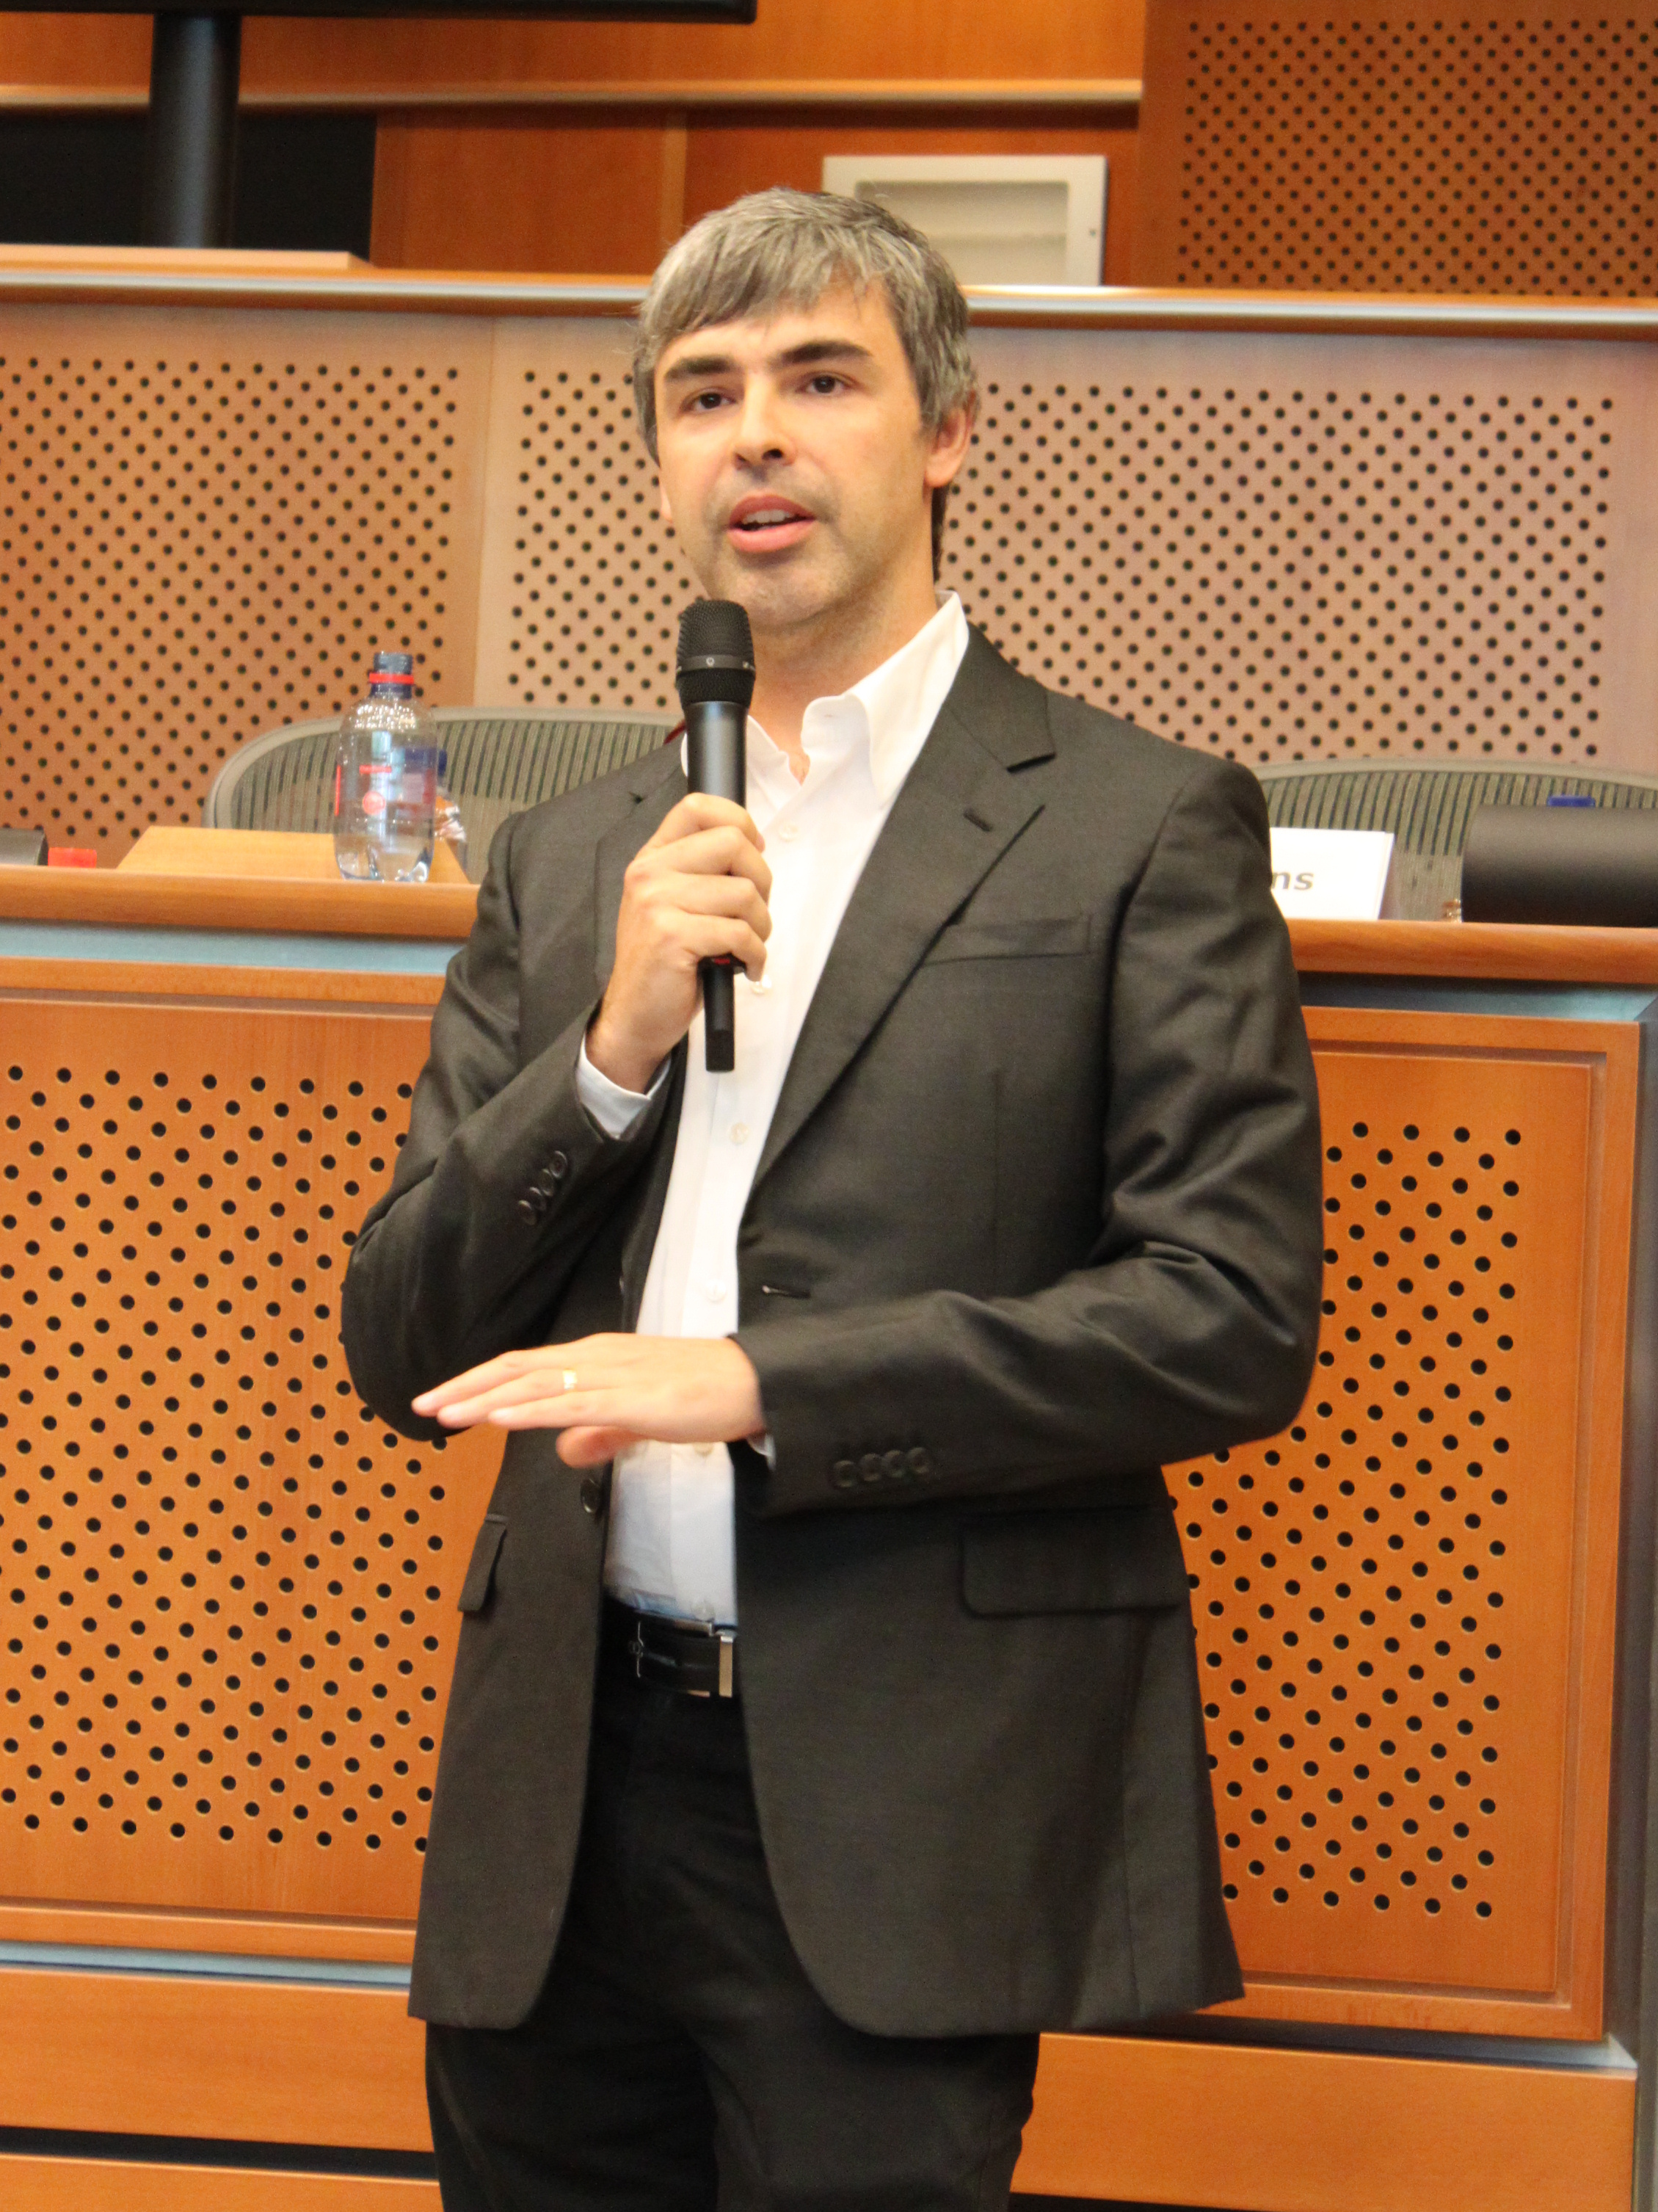 Larry_Page_in_the_European_Parliament,_17.06.2009.jpg